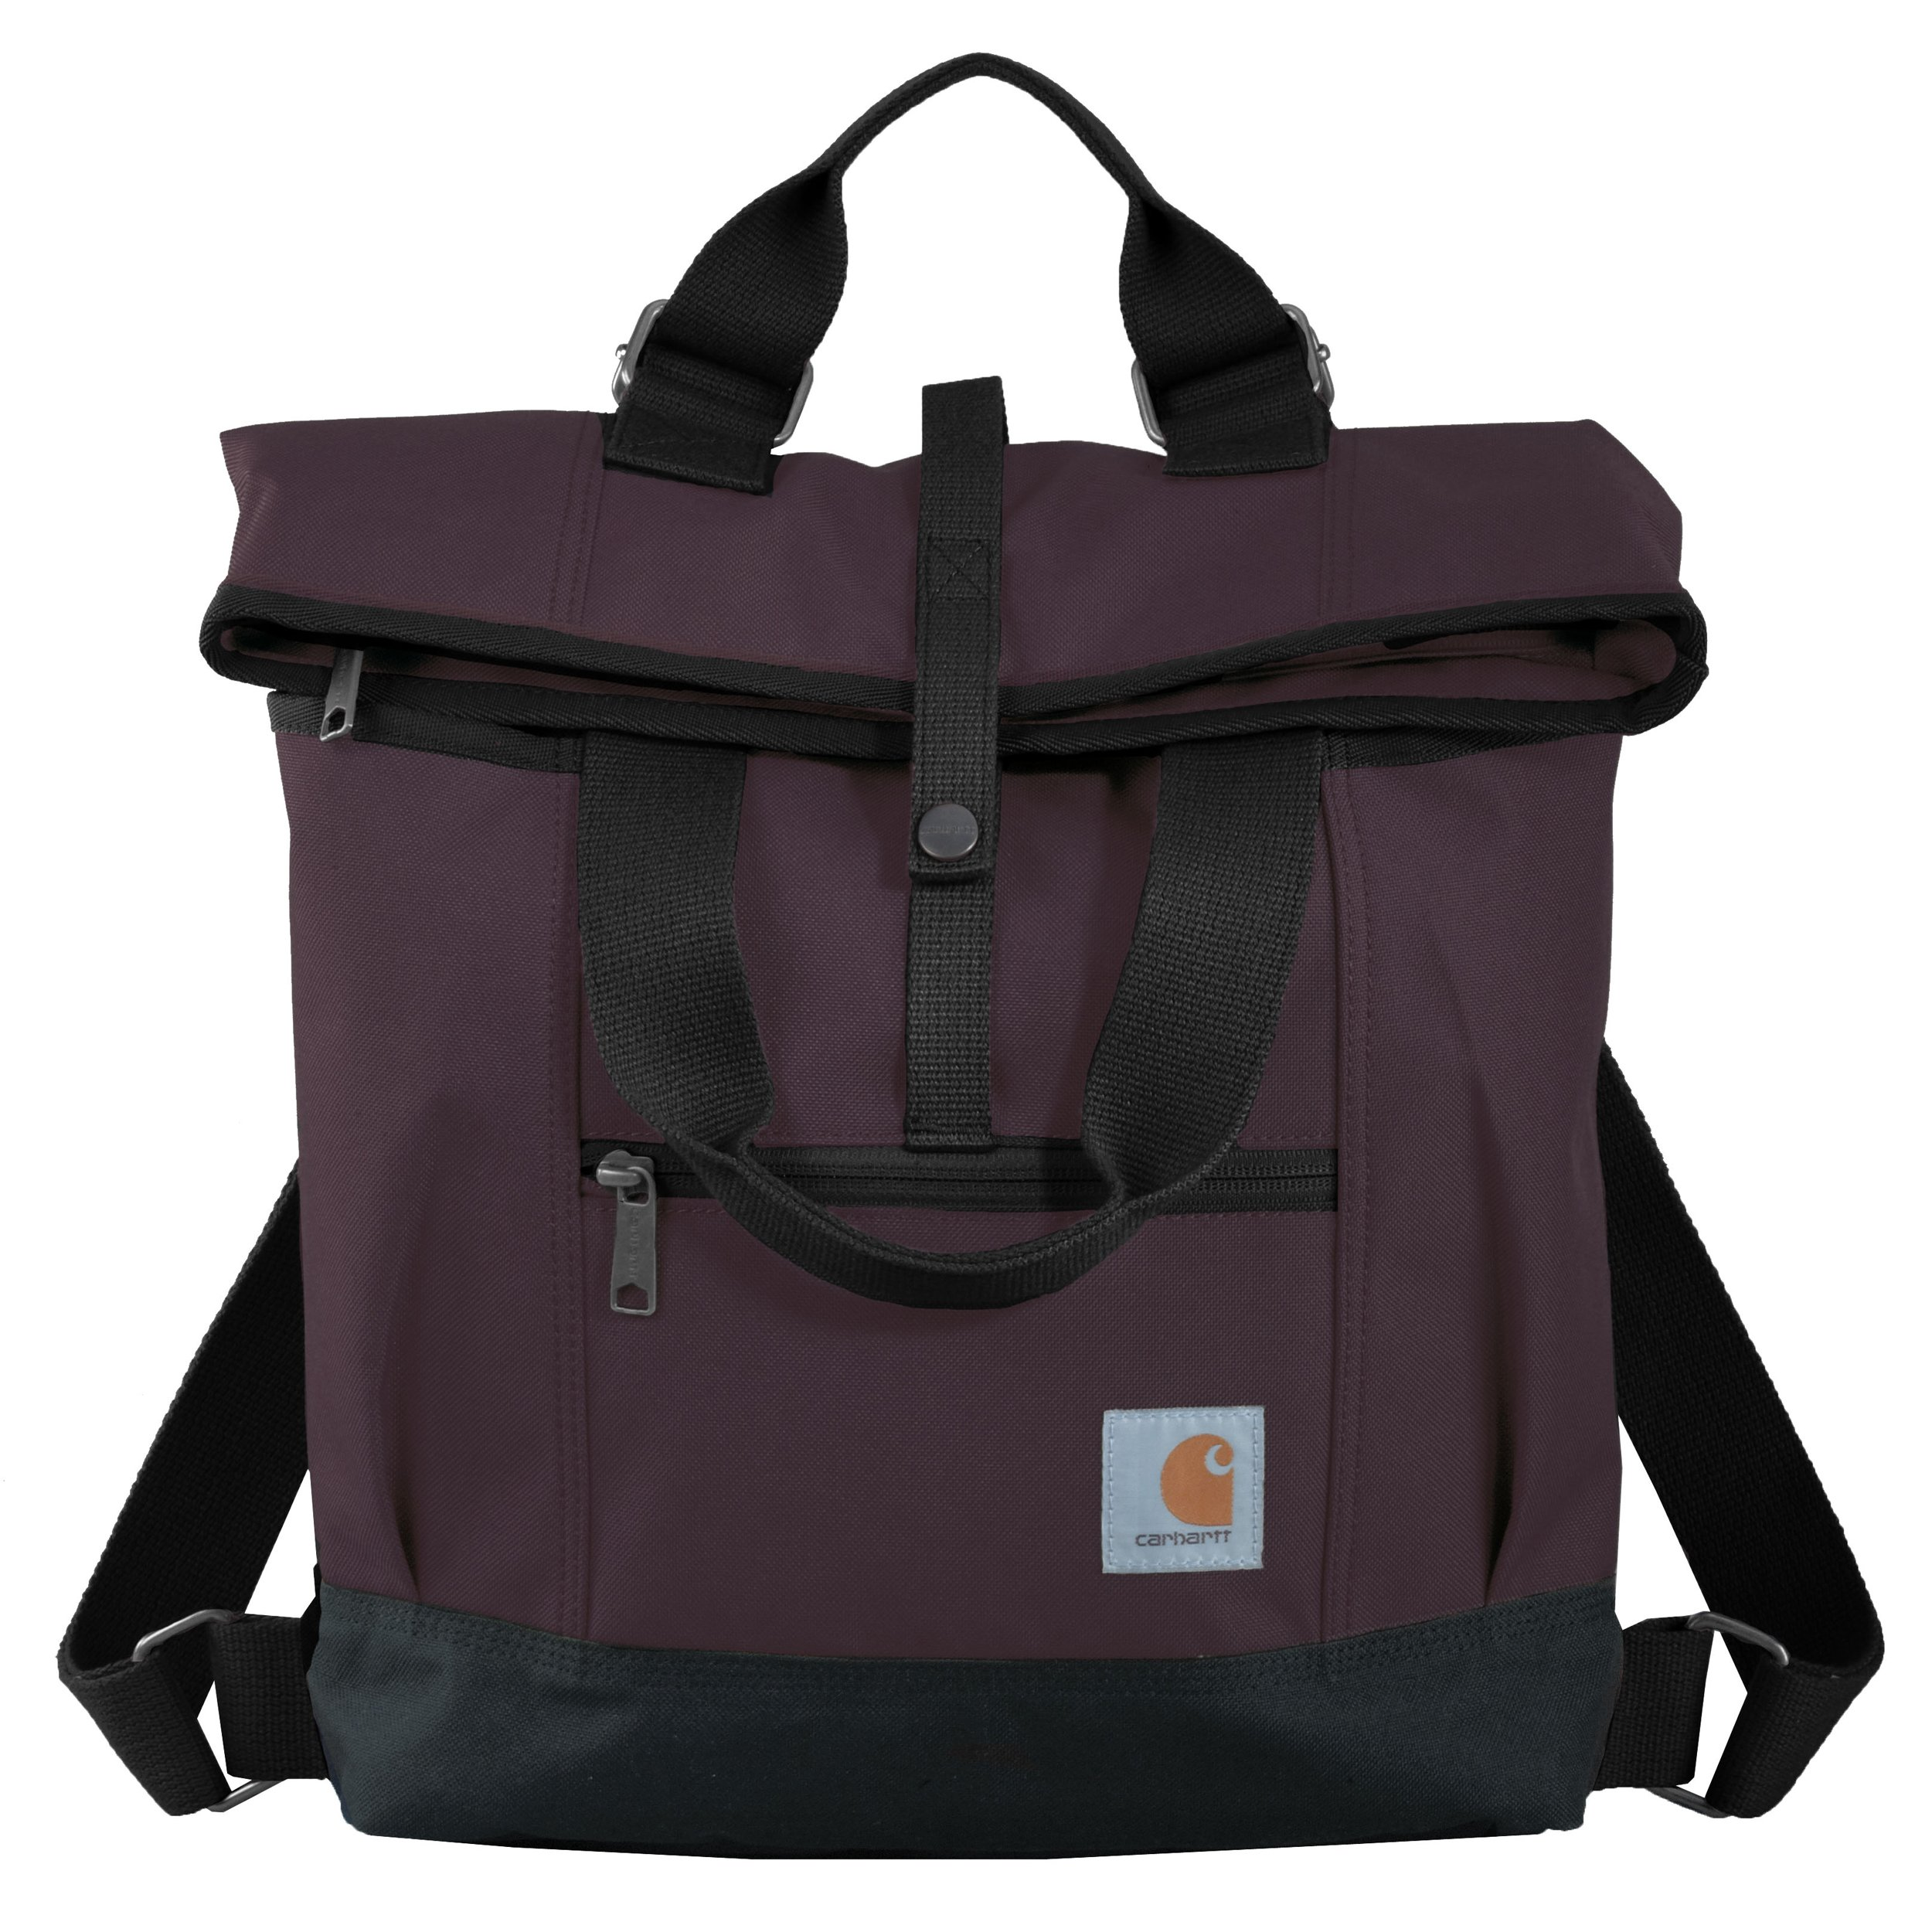 Carhartt Legacy Women's Hybrid Convertible Backpack Tote Bag, Wine